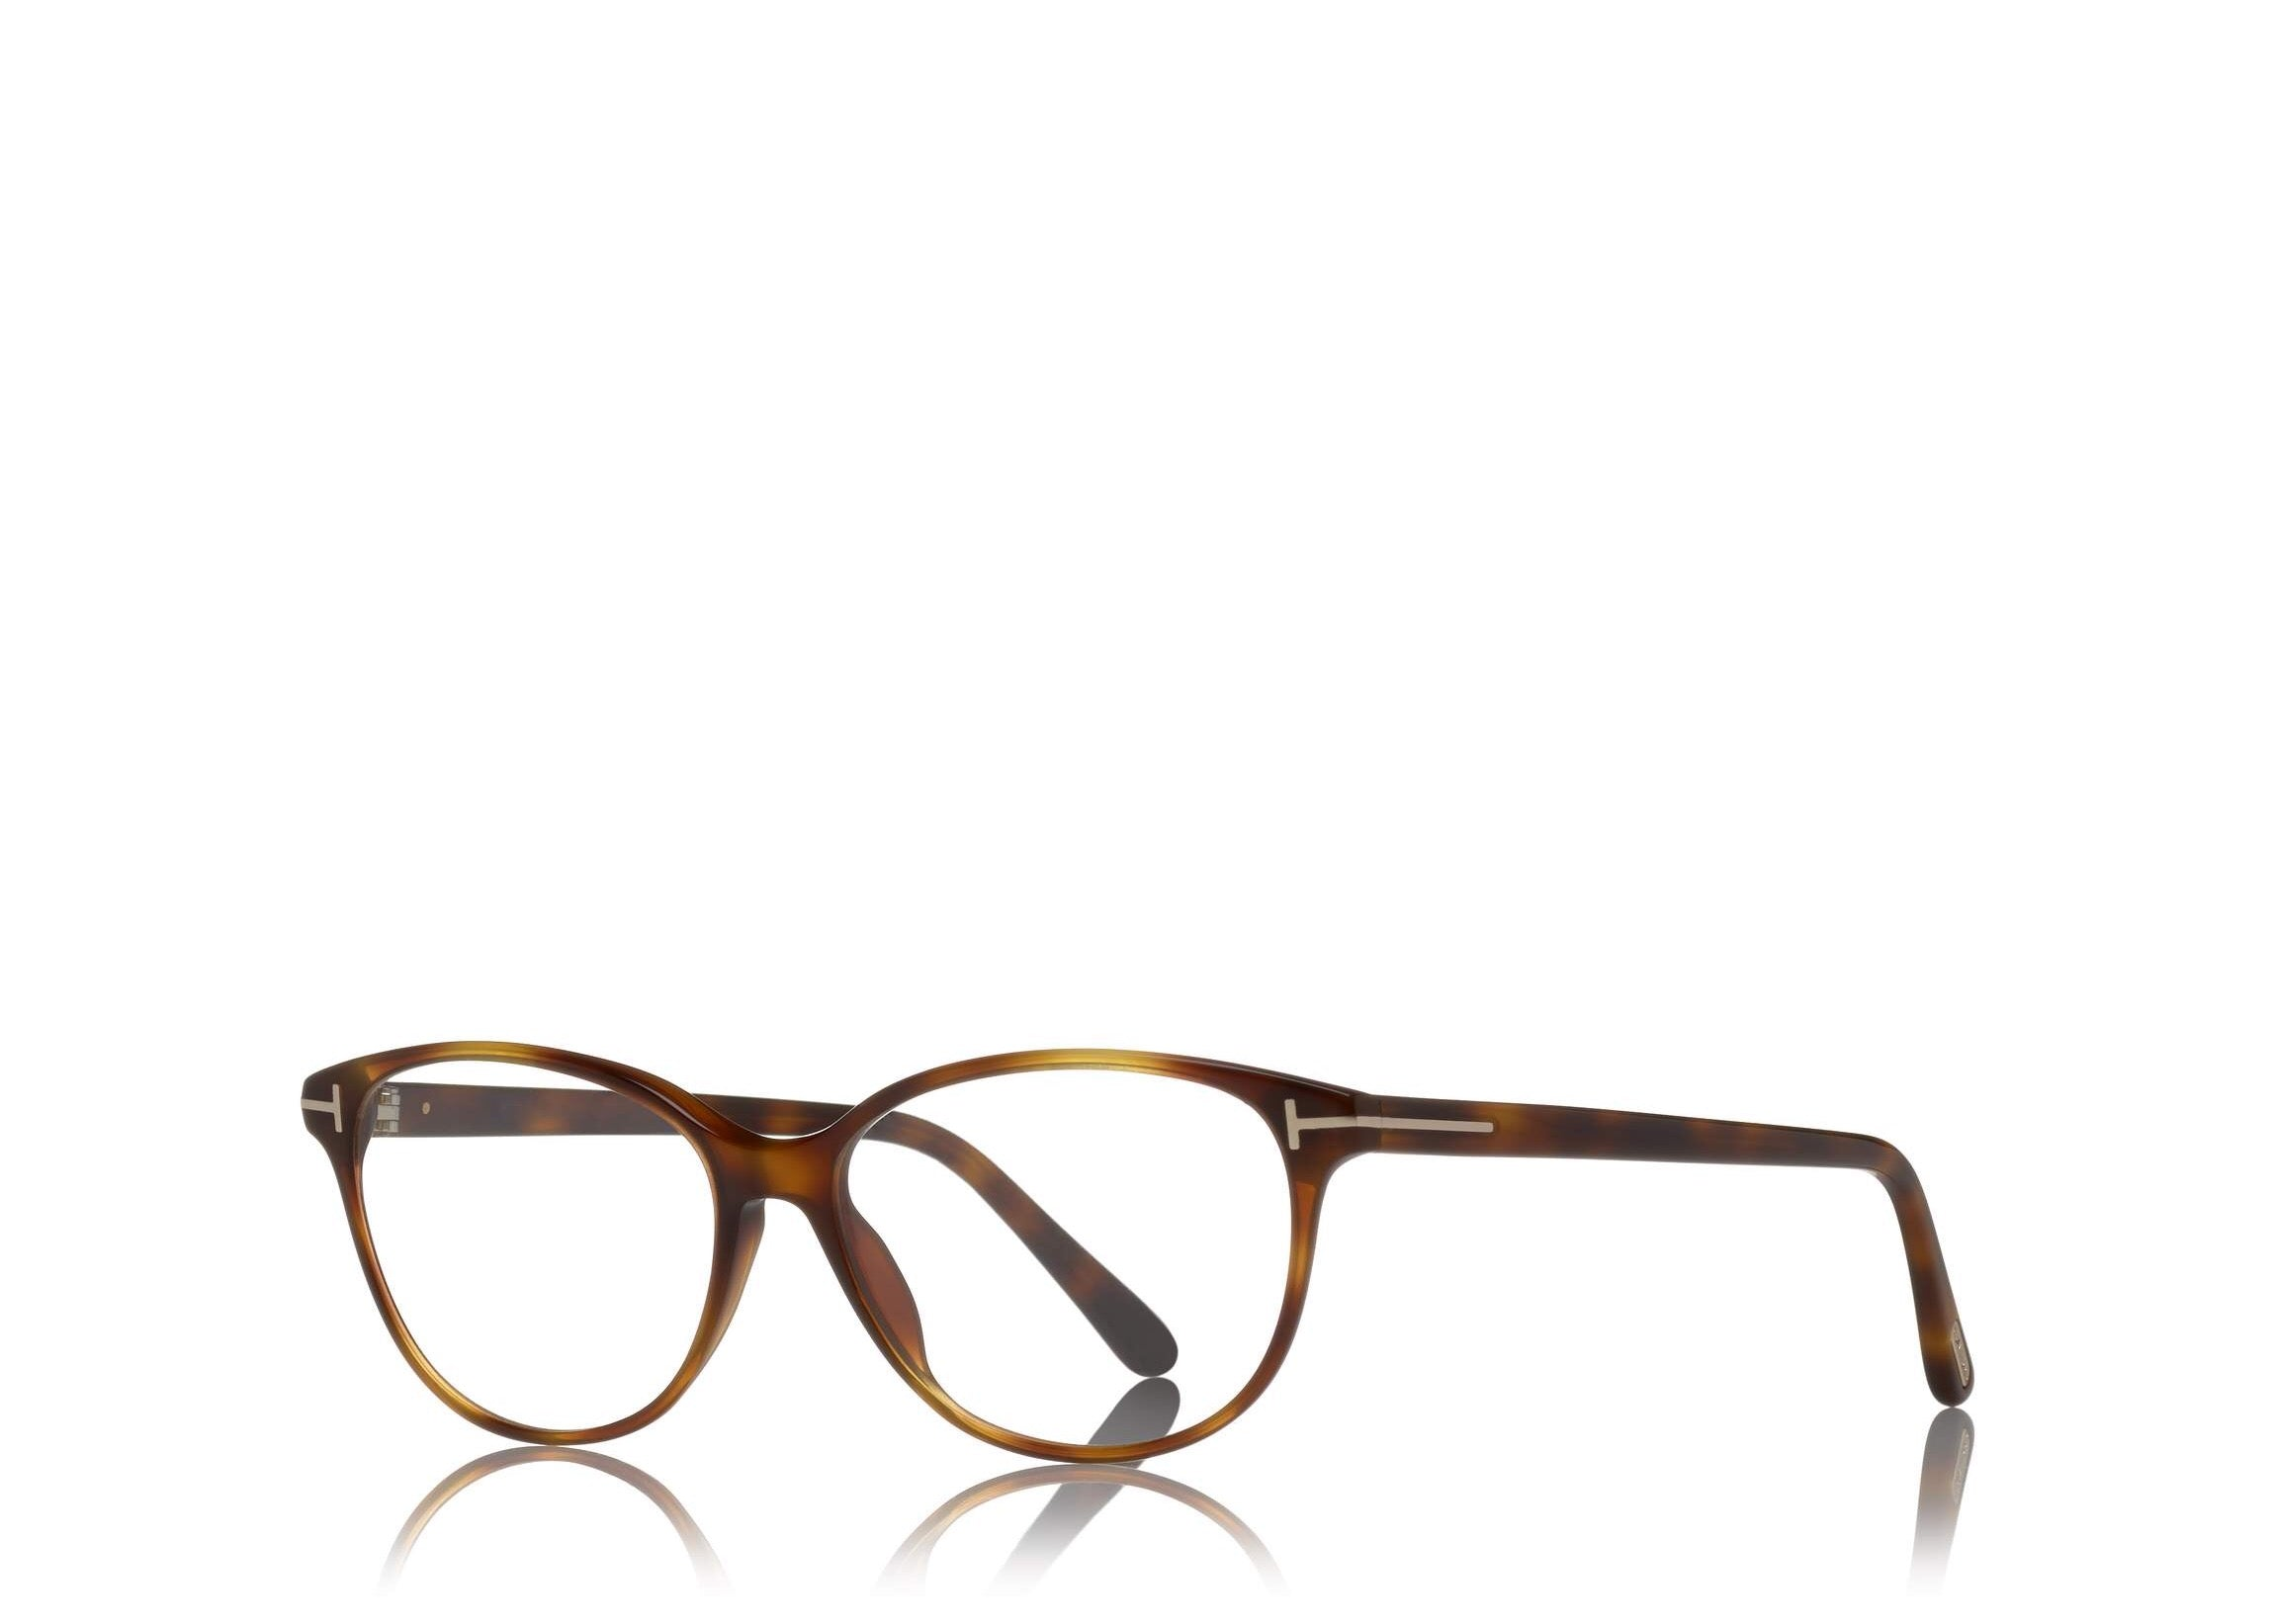 138280a5582 ... 6468981261 TOM FORD FT 5421 WOMEN S CAT EYE-FRAME OPTICAL GLASSES